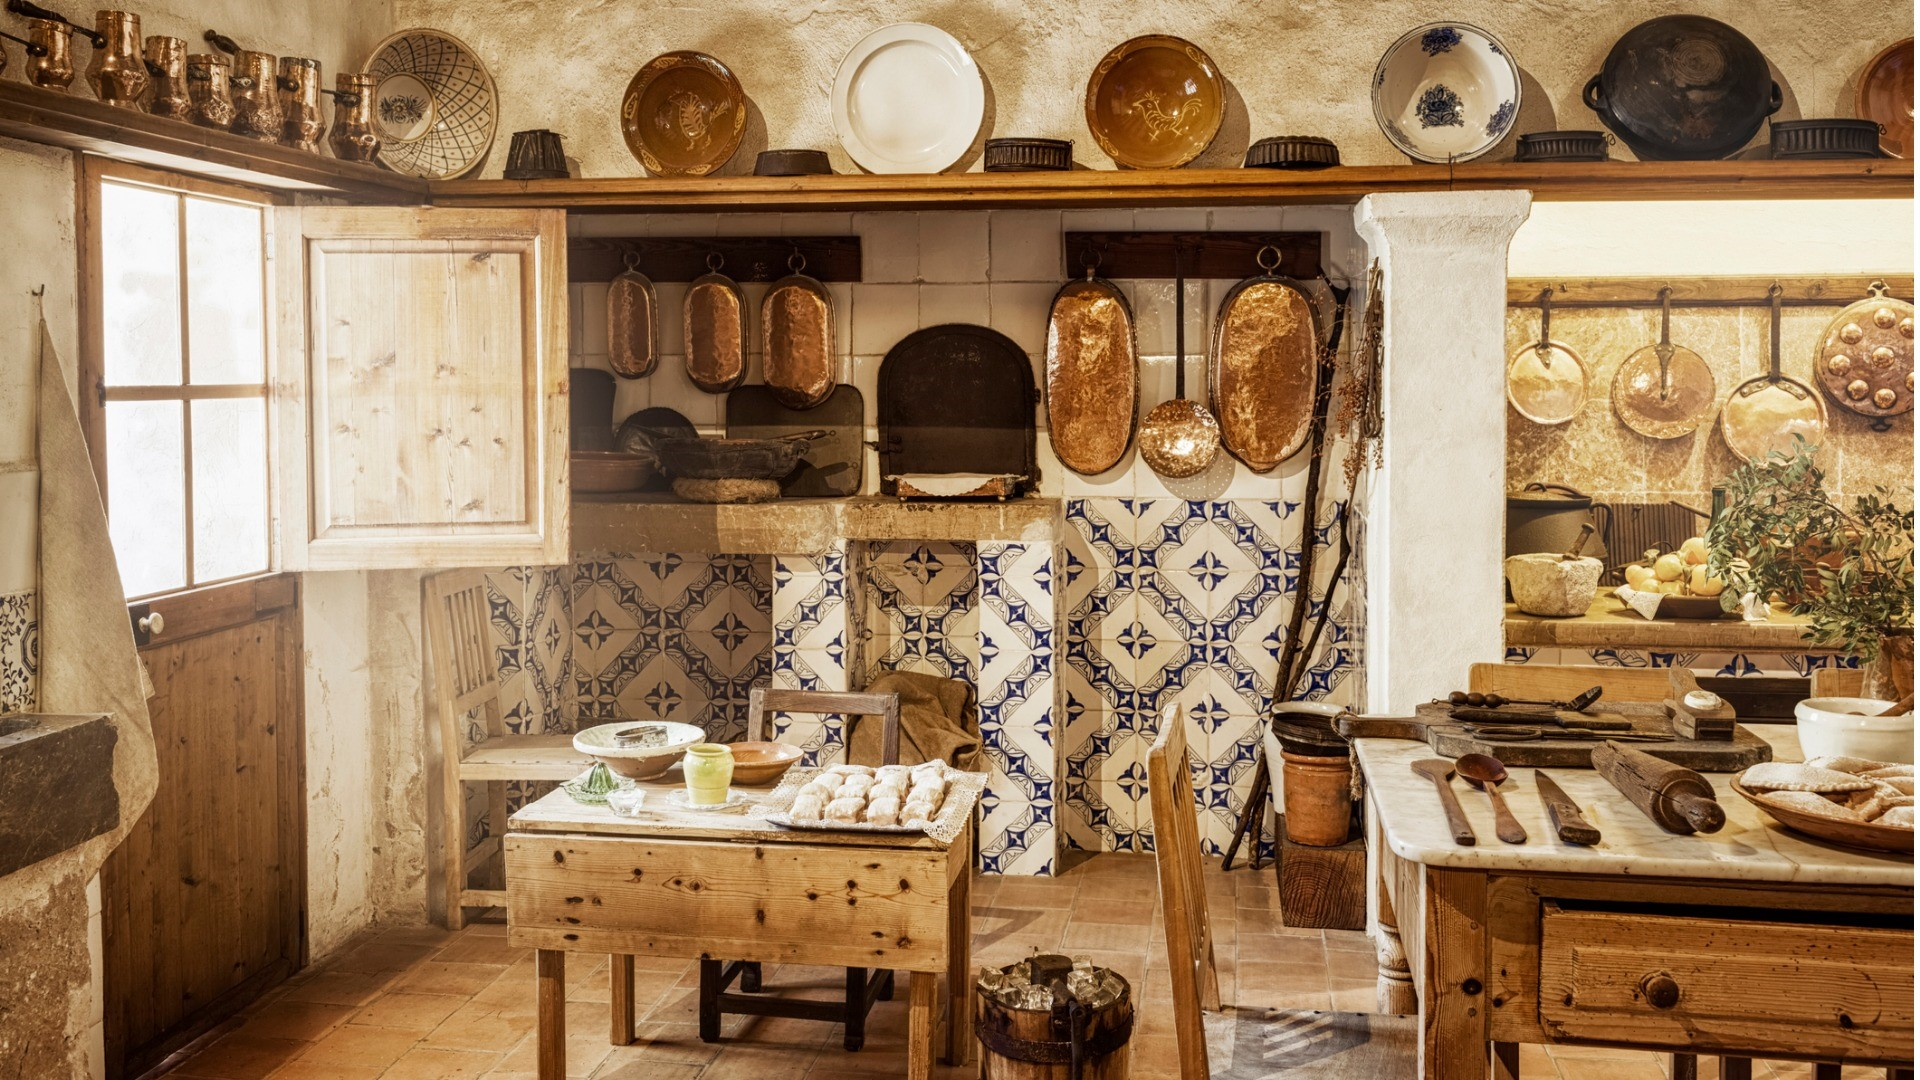 French country style kitchen with blue and white tiled walls, a natural wood-finished kitchen in a farmhouse style home that showcases copper kitchenware and an island nook seating area.